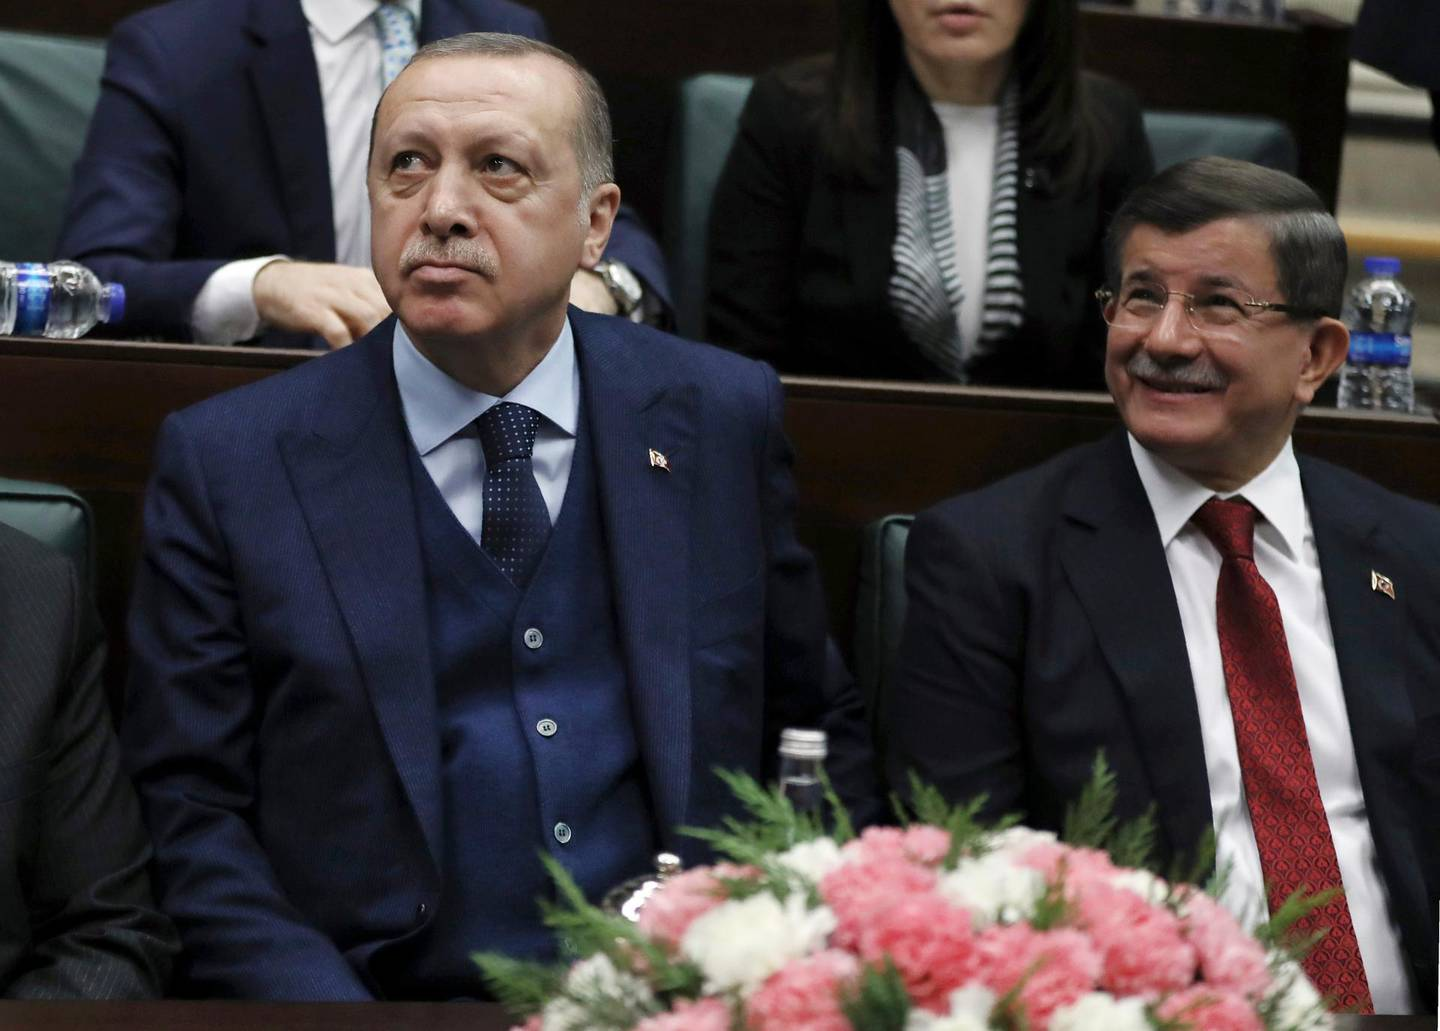 FILE - In this Jan. 30, 2018 file photo, Turkey's President Recep Tayyip Erdogan, left, and former Prime Minister Ahmet Davutoglu look toward the party members at the parliament in Ankara, Turkey. Davutoglu, a former Turkish prime minister, who had served as foreign minister between 2009 and 2014 and later as prime minister until 2016, has established a new political party on Thursday, Dec. 12, 2019, in a move that could dent support for President Recep Tayyip Erdogan's ruling party. (AP Photo/Burhan Ozbilici, File)